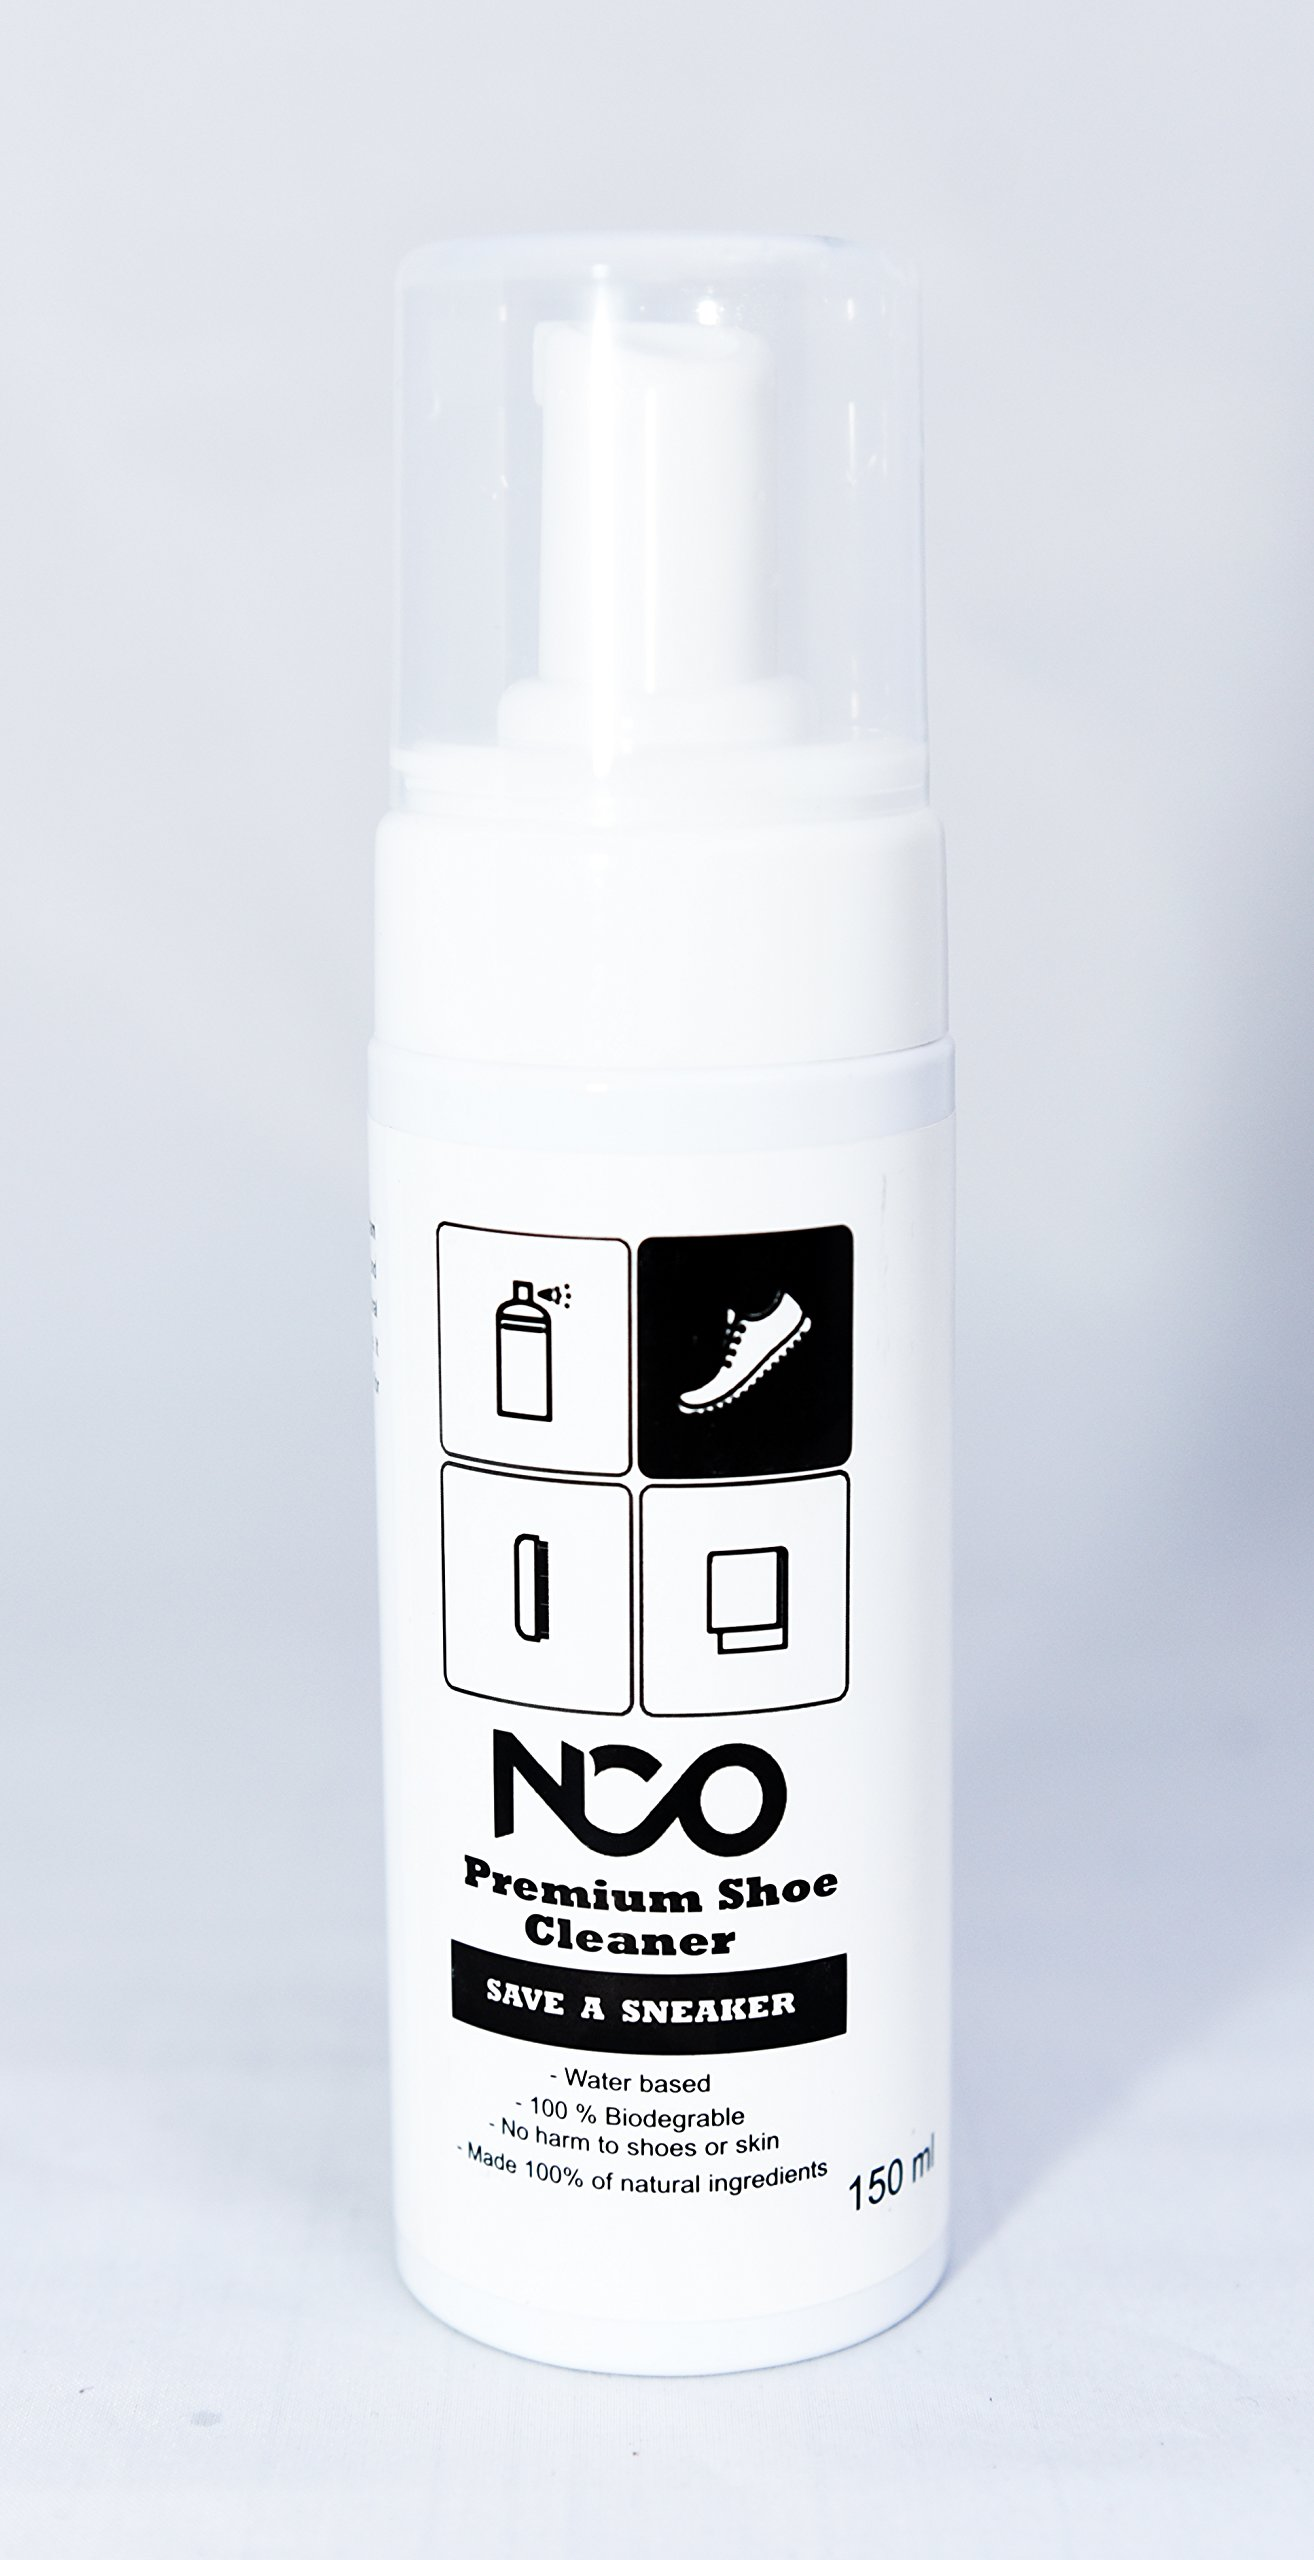 Premium Shoe Sneaker Cleaner Kit 150 ML Bottle Natural Foam Solution Set with Brush and Microfiber Towel Cloth Water Based Formula All in One Portable Kit by NCO (Image #9)